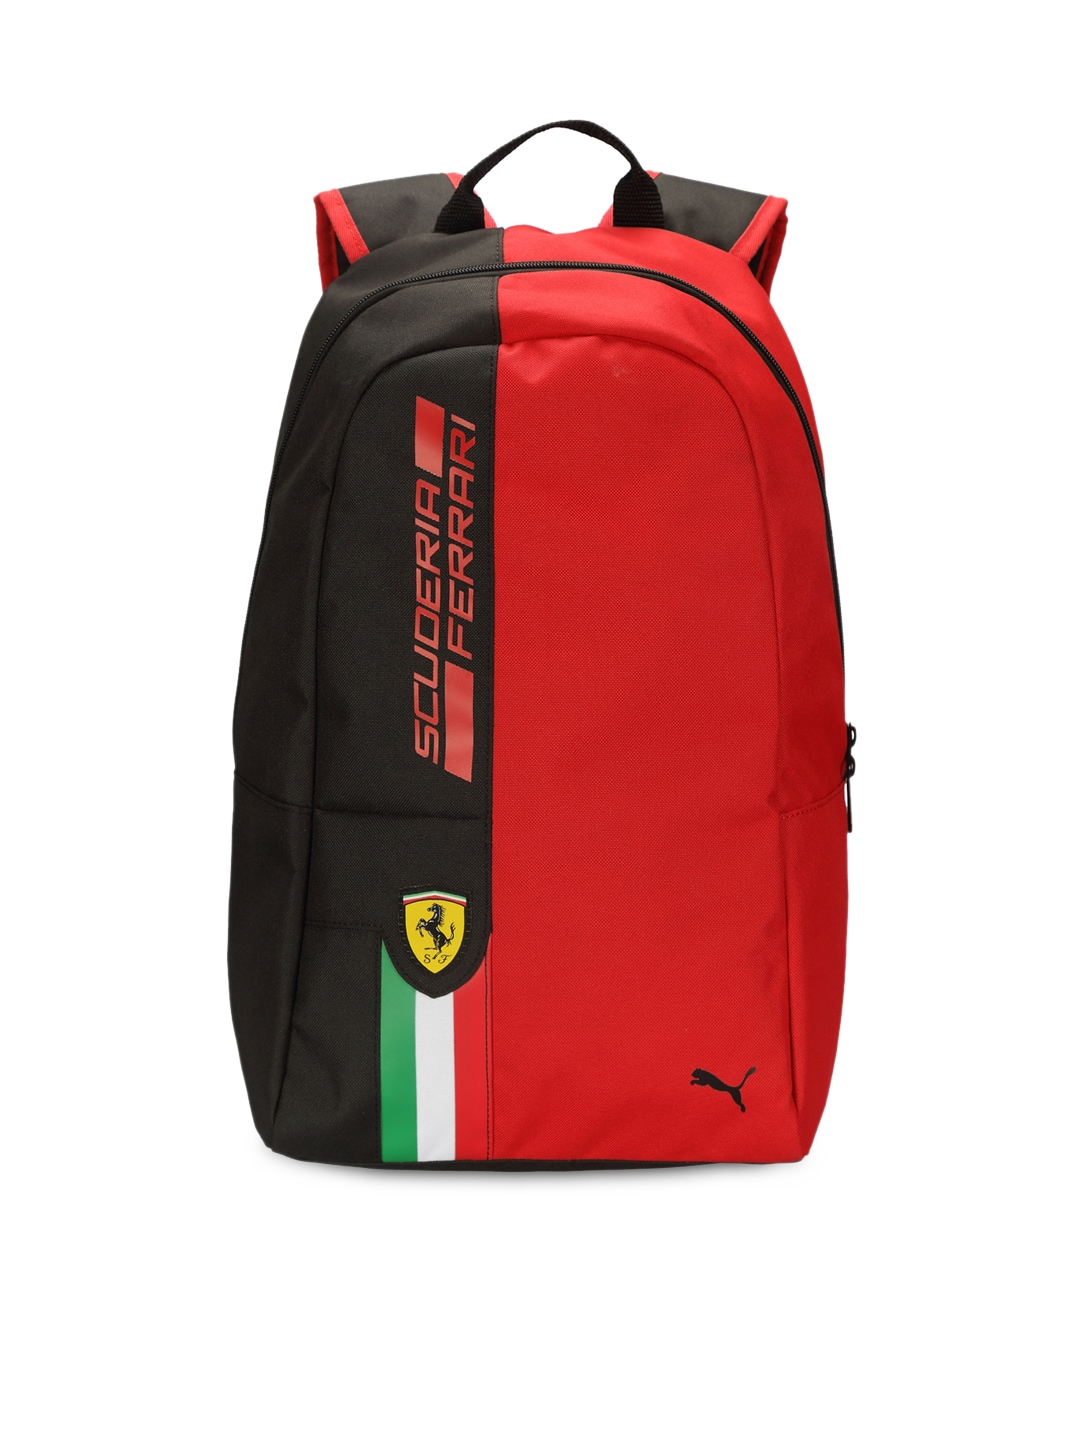 784e4731f024 cheap puma ferrari backpack on sale   OFF36% Discounts